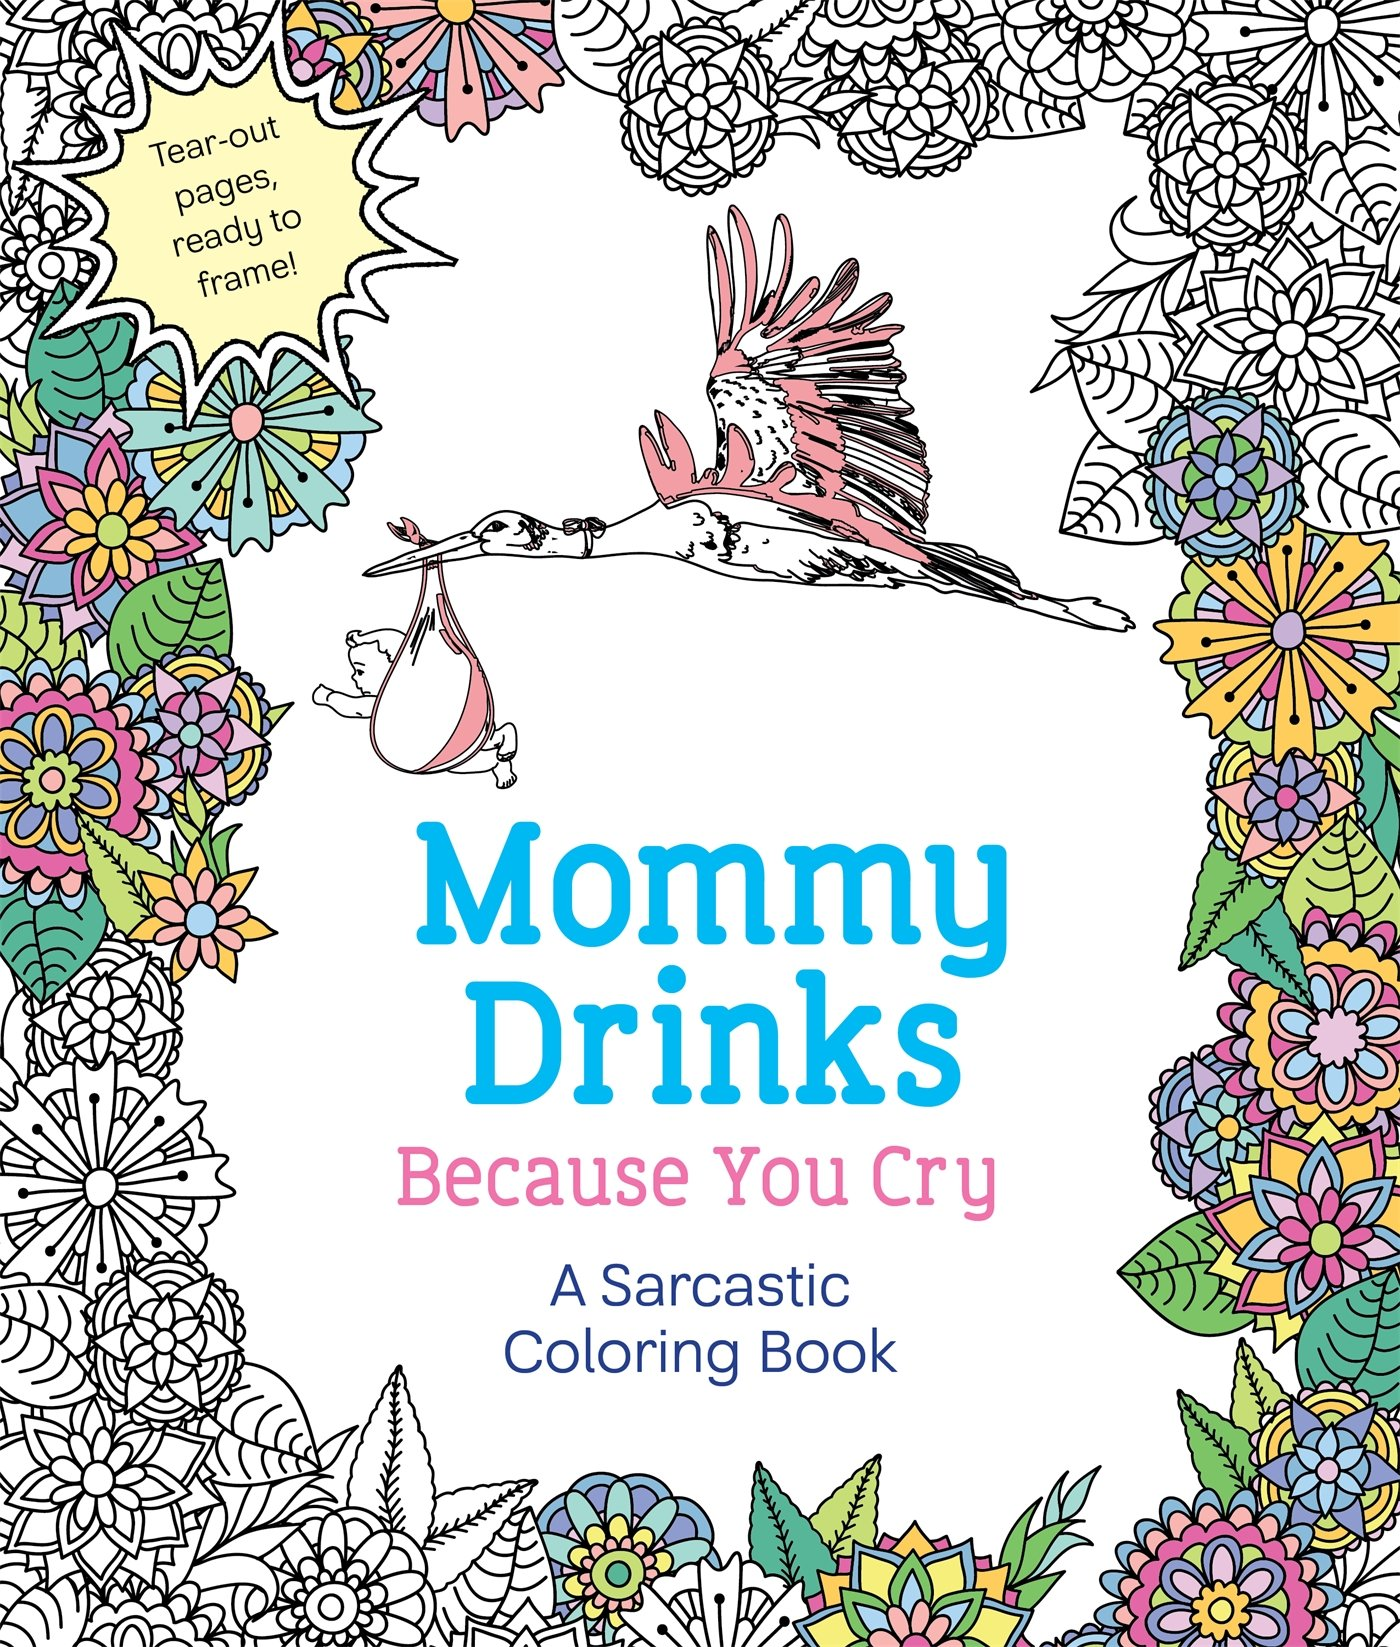 Mommy Drinks Because You Cry A Sarcastic Coloring Book Hannah